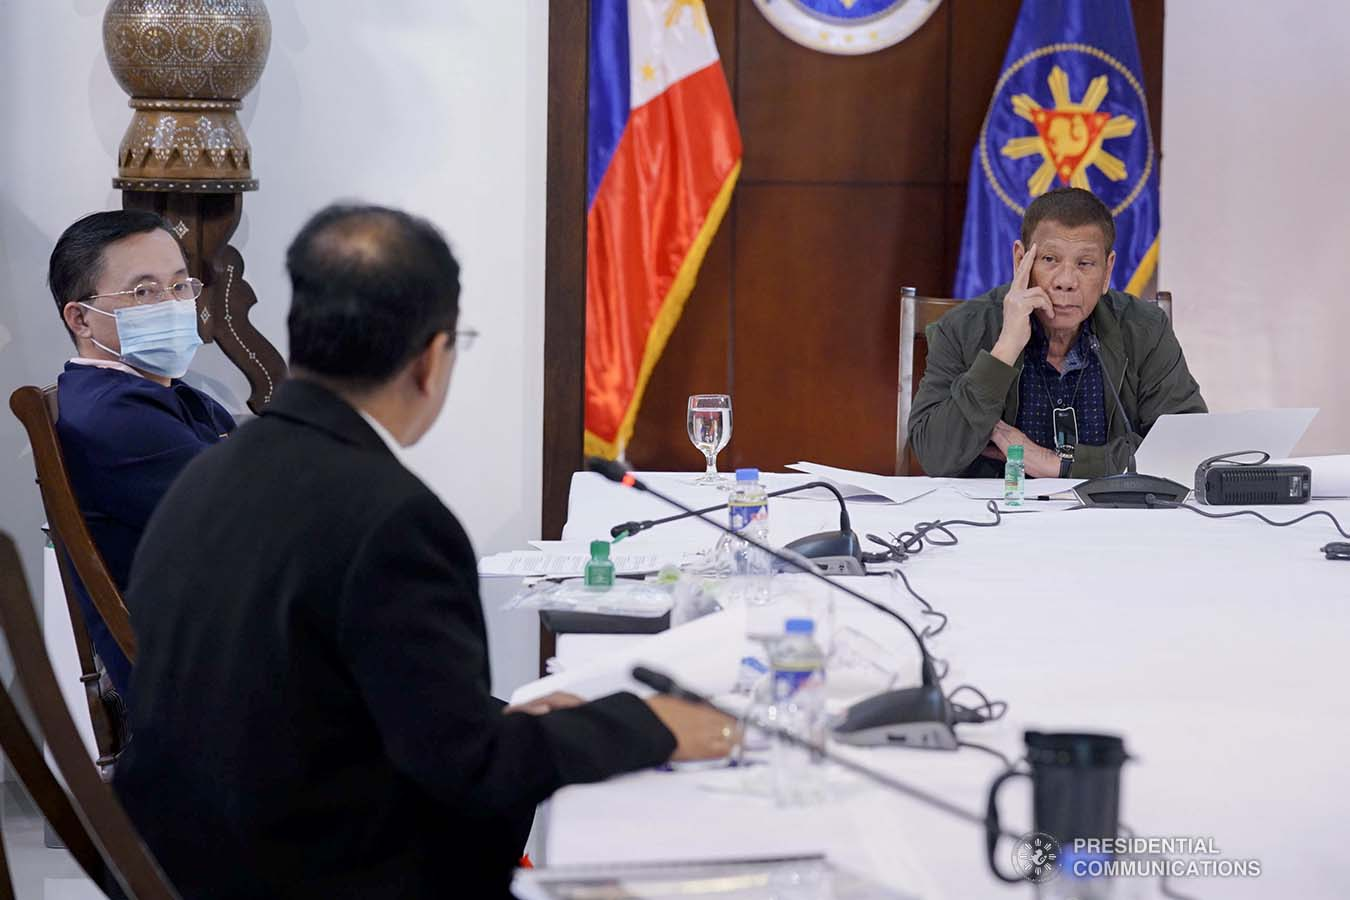 President Rodrigo Roa Duterte holds a meeting with the core members of the Inter-Agency Task Force on the Emerging Infectious Diseases (IATF-EID) at the Presidential Guest House in Panacan, Davao City on July 7, 2020. ARMAN BAYLON/PRESIDENTIAL PHOTO